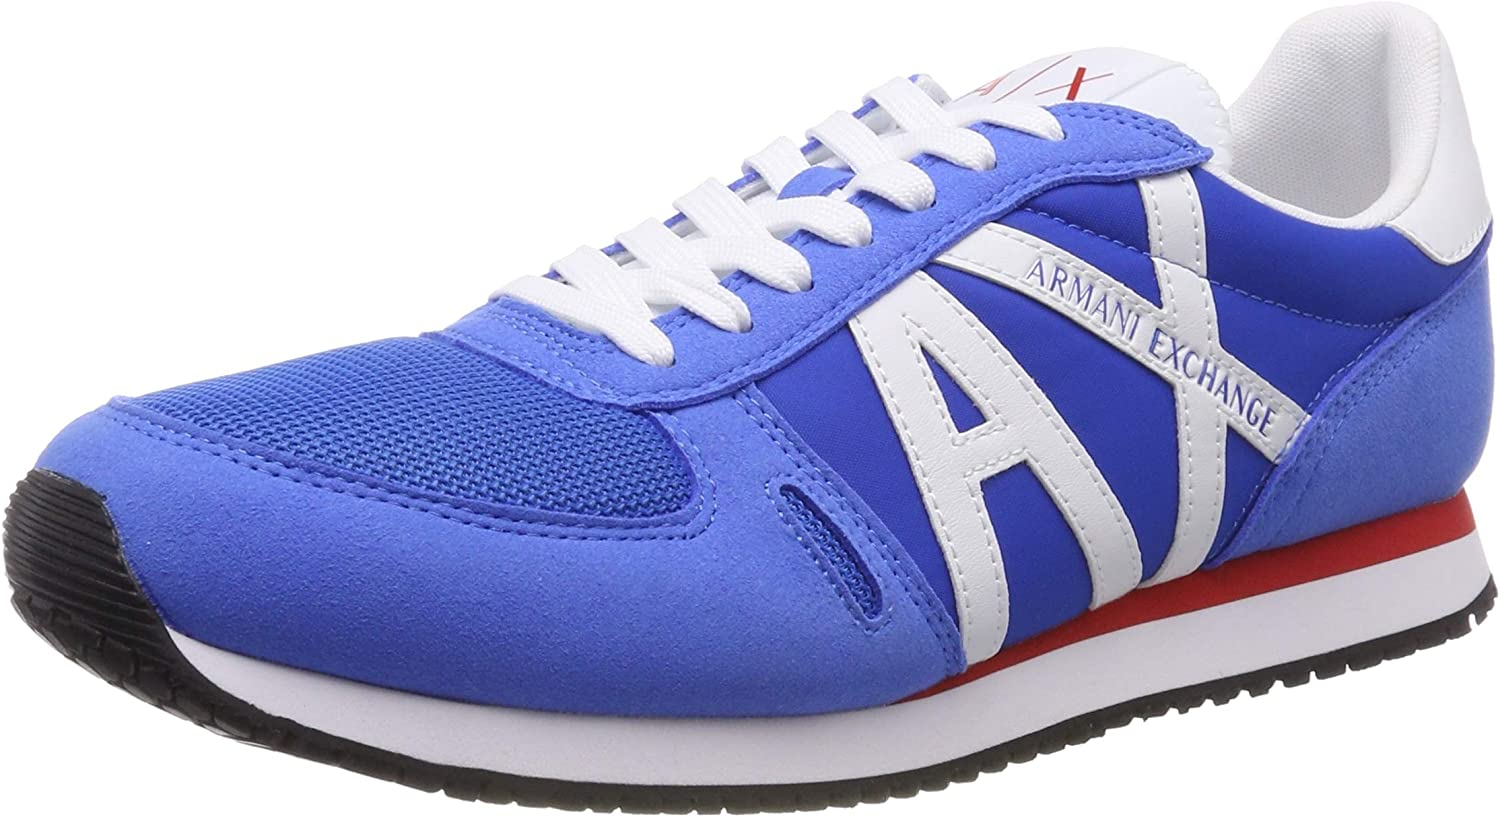 Armani Exchange Men's's Lace Up Sneaker with Logo Low-Top